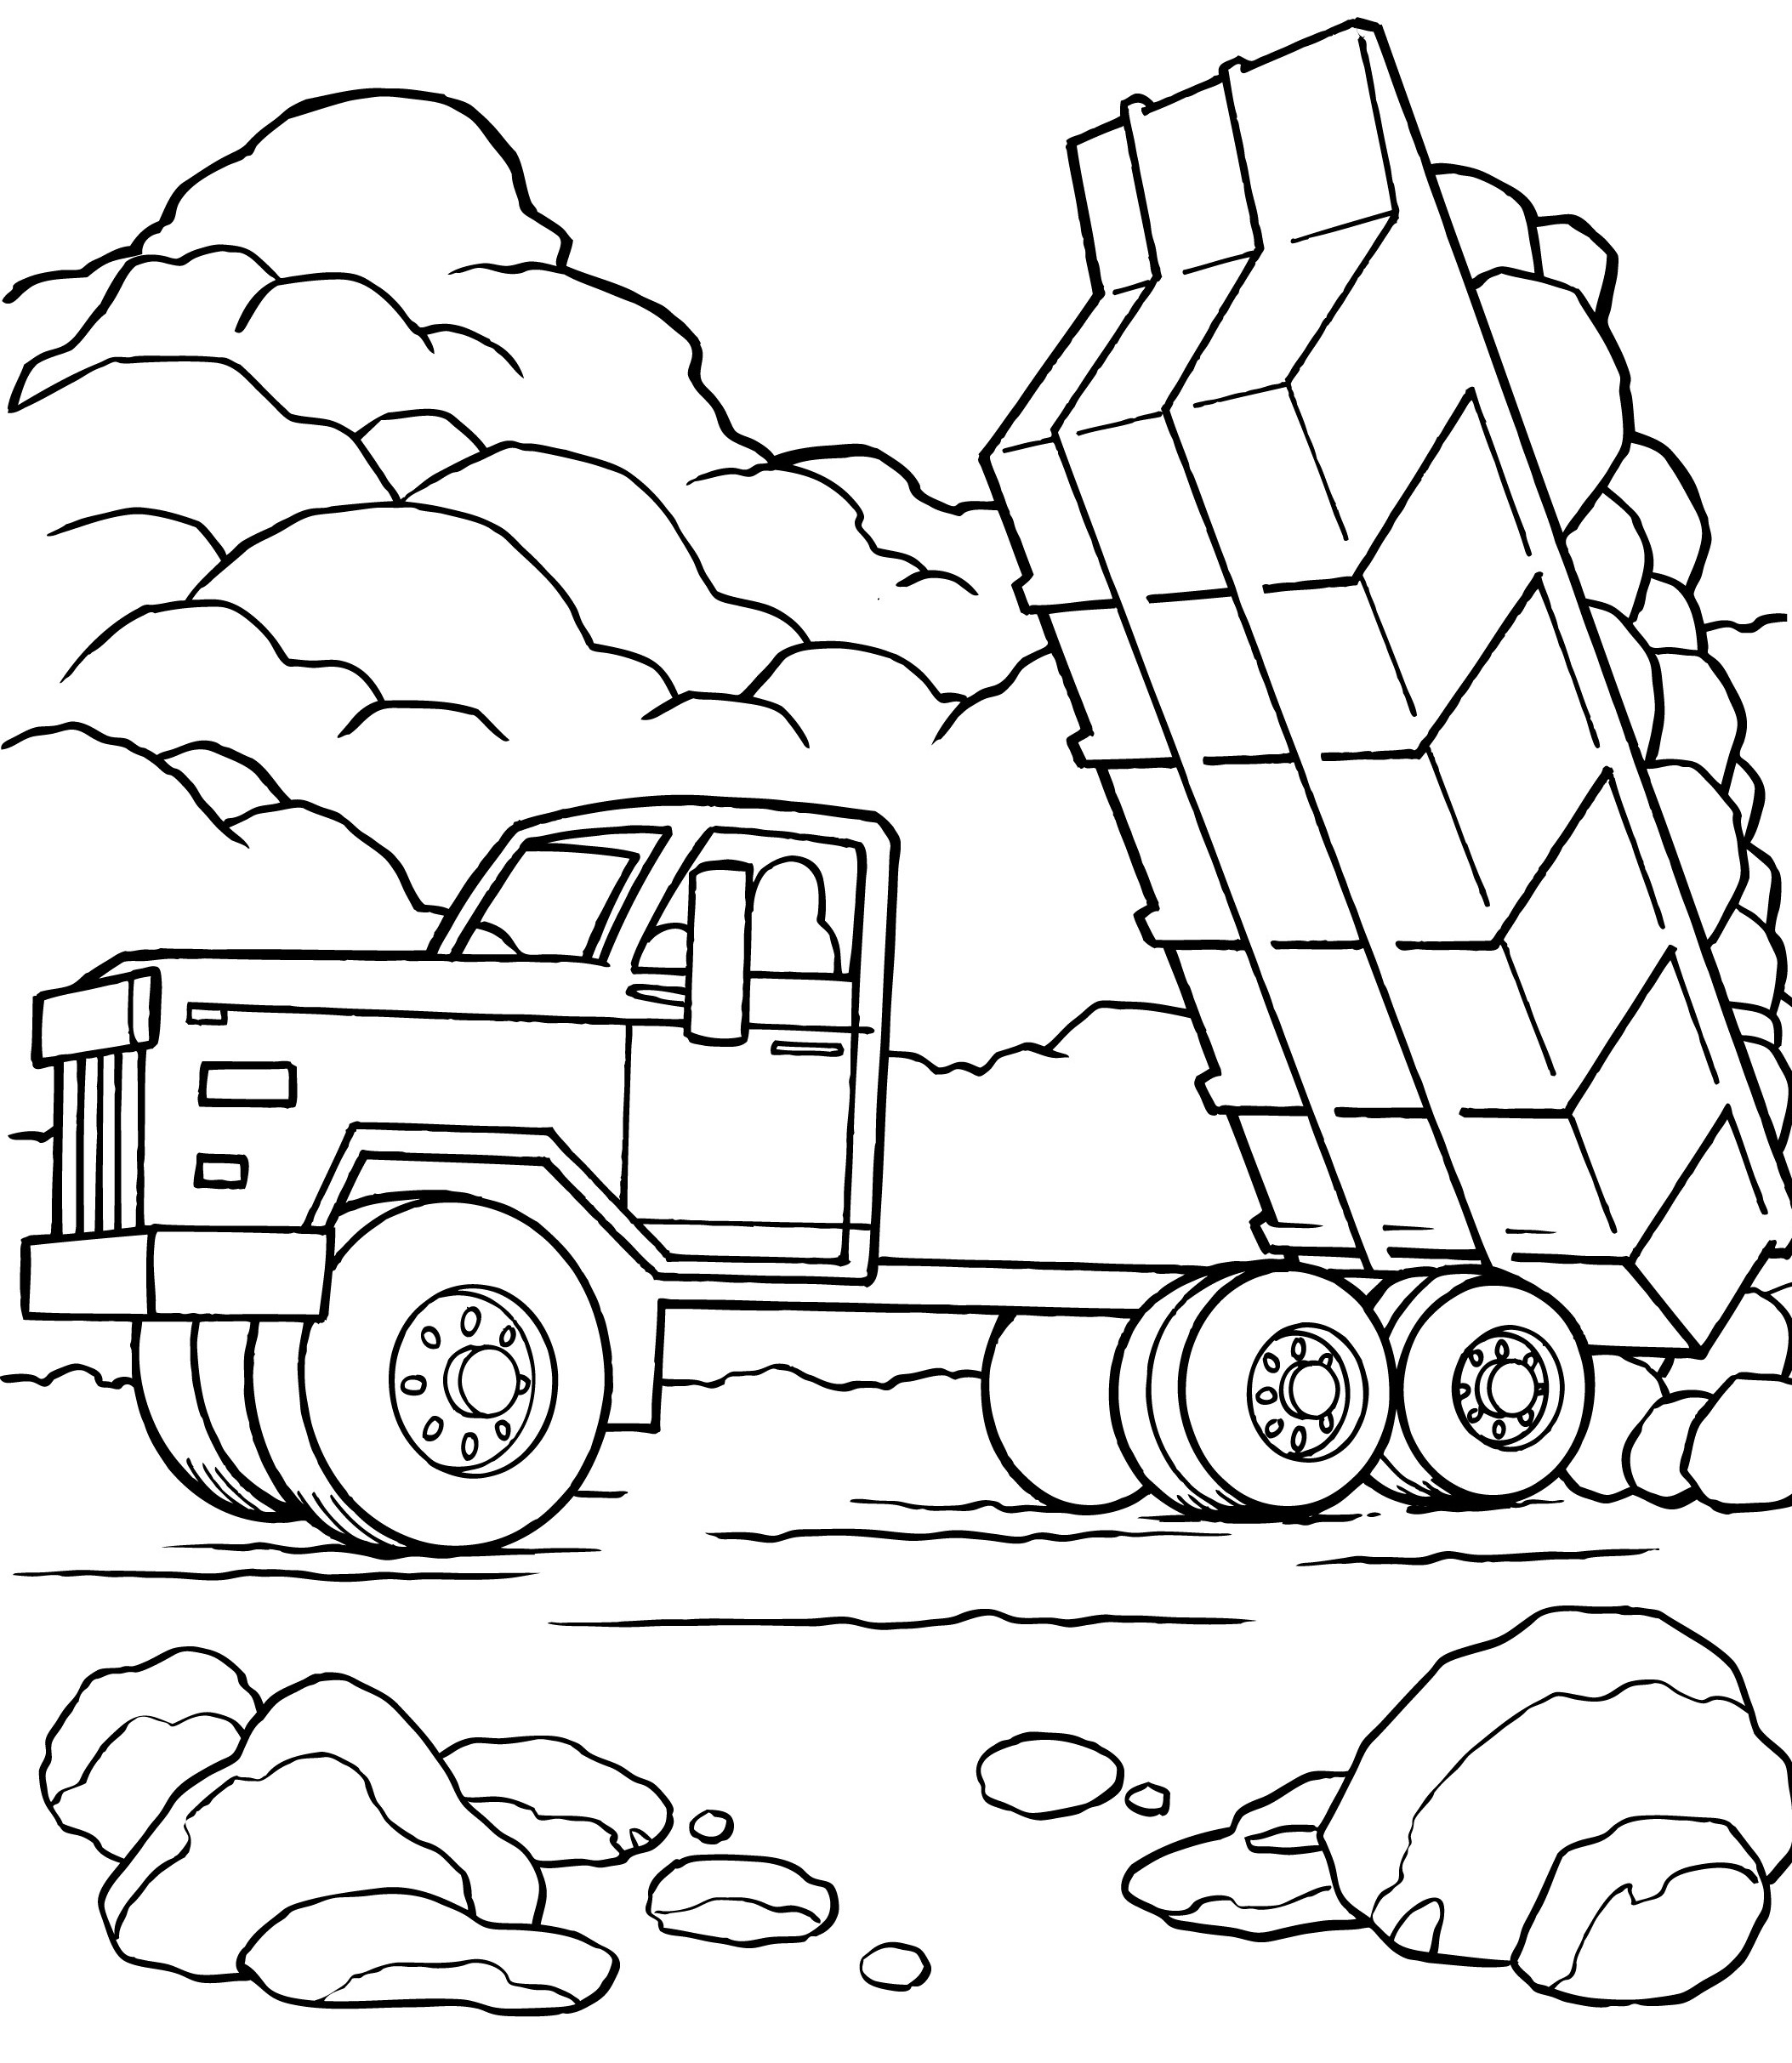 excavator coloring page - printable dump truck coloring pages